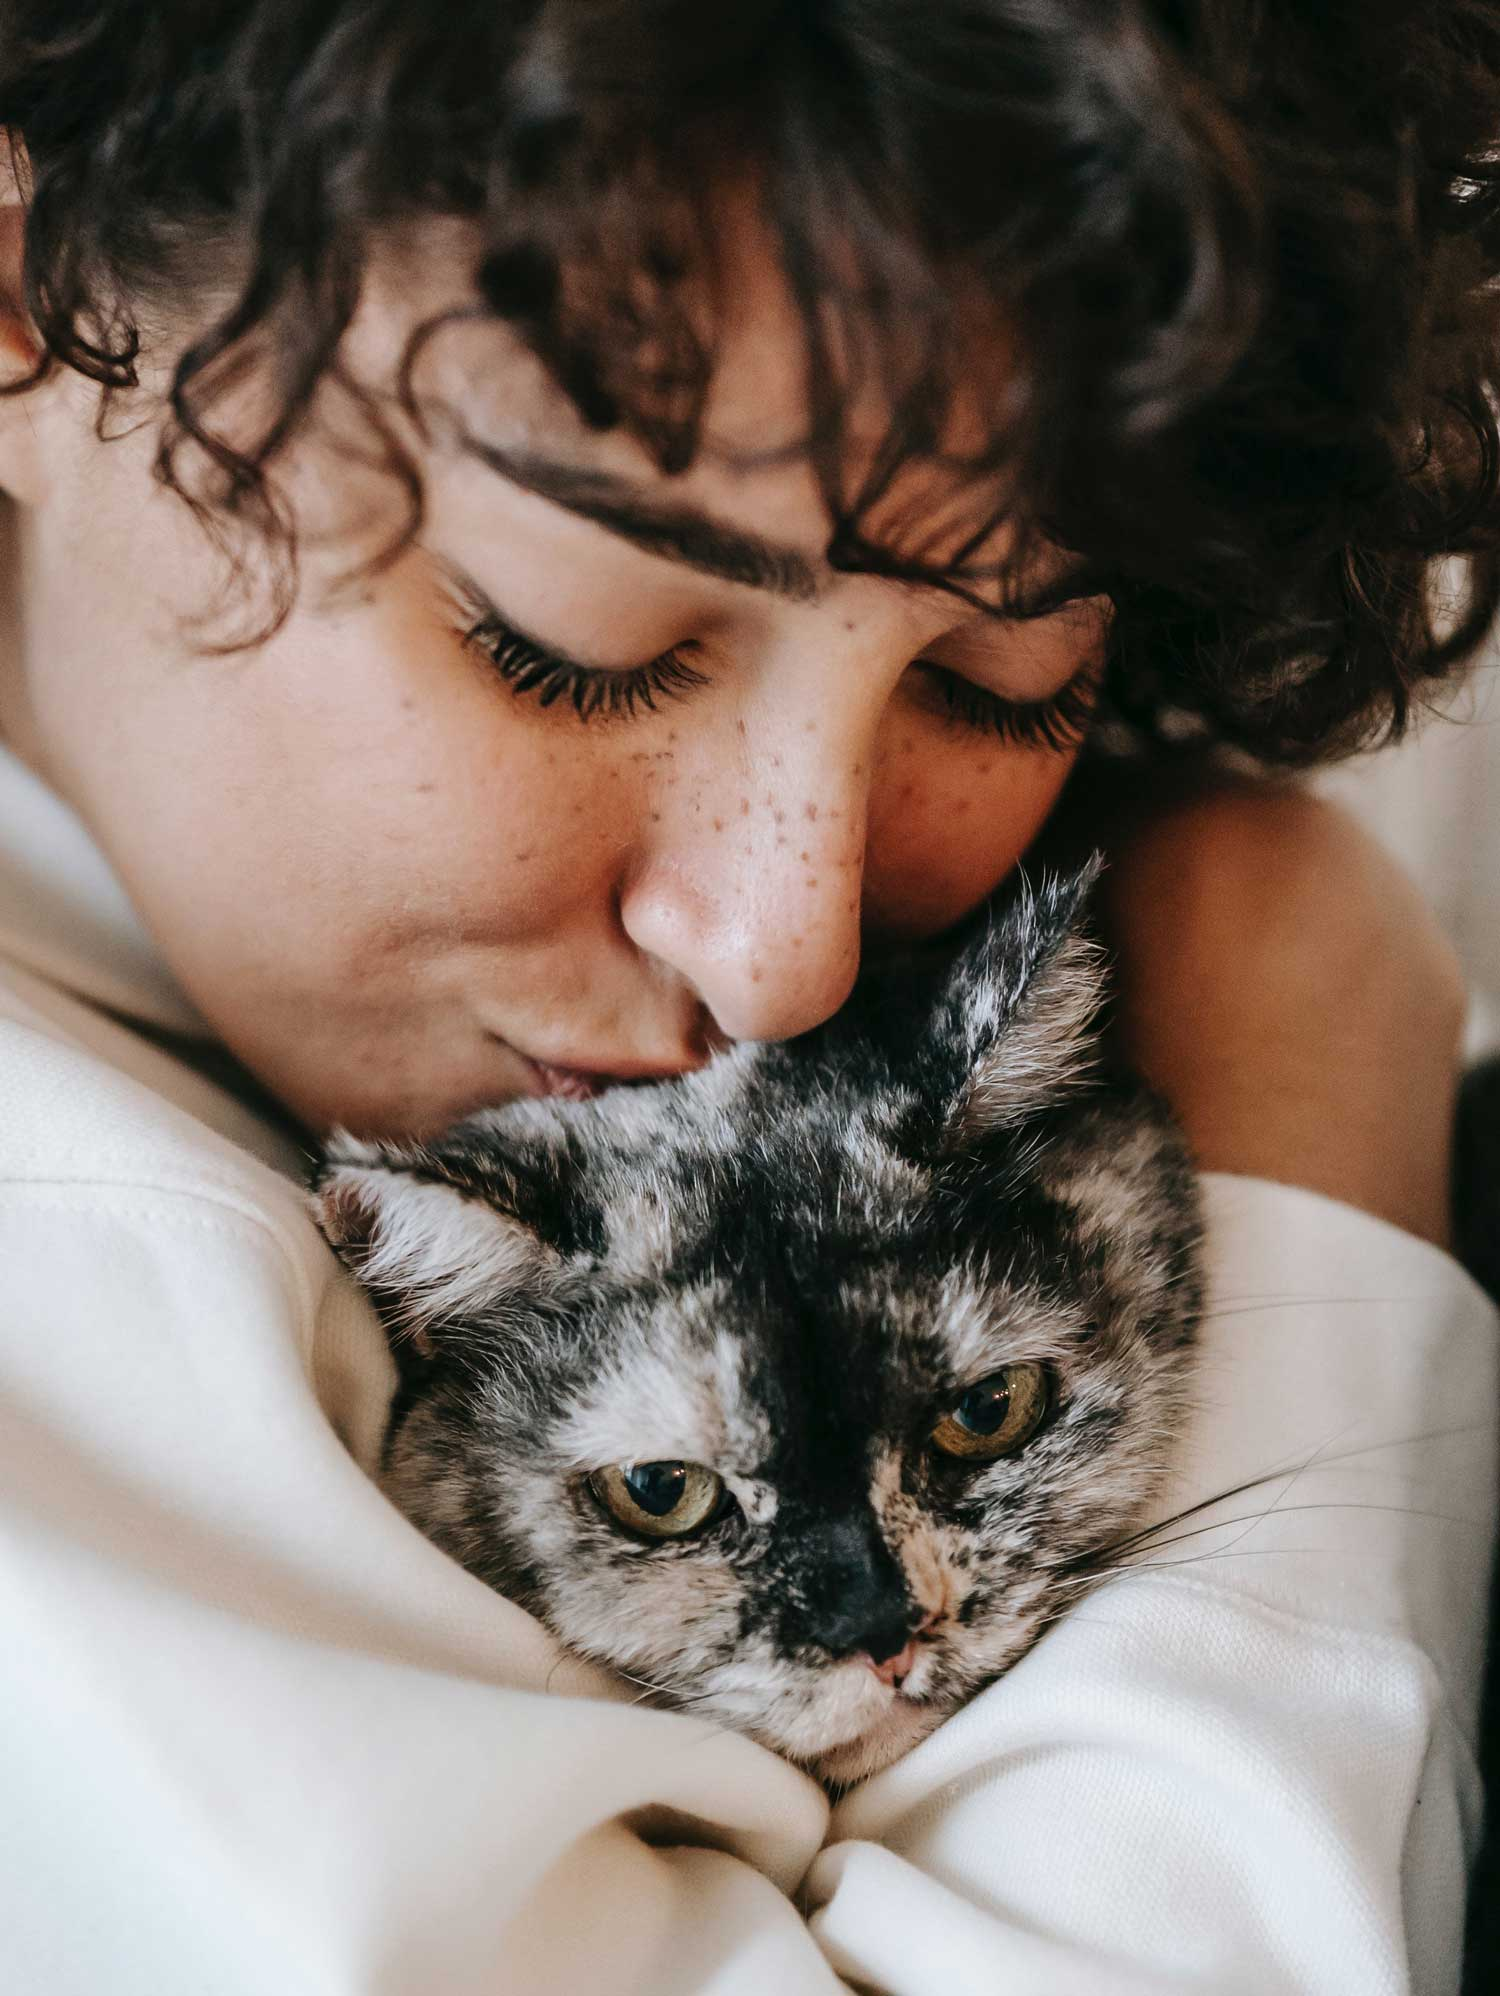 An image of a woman with a cat